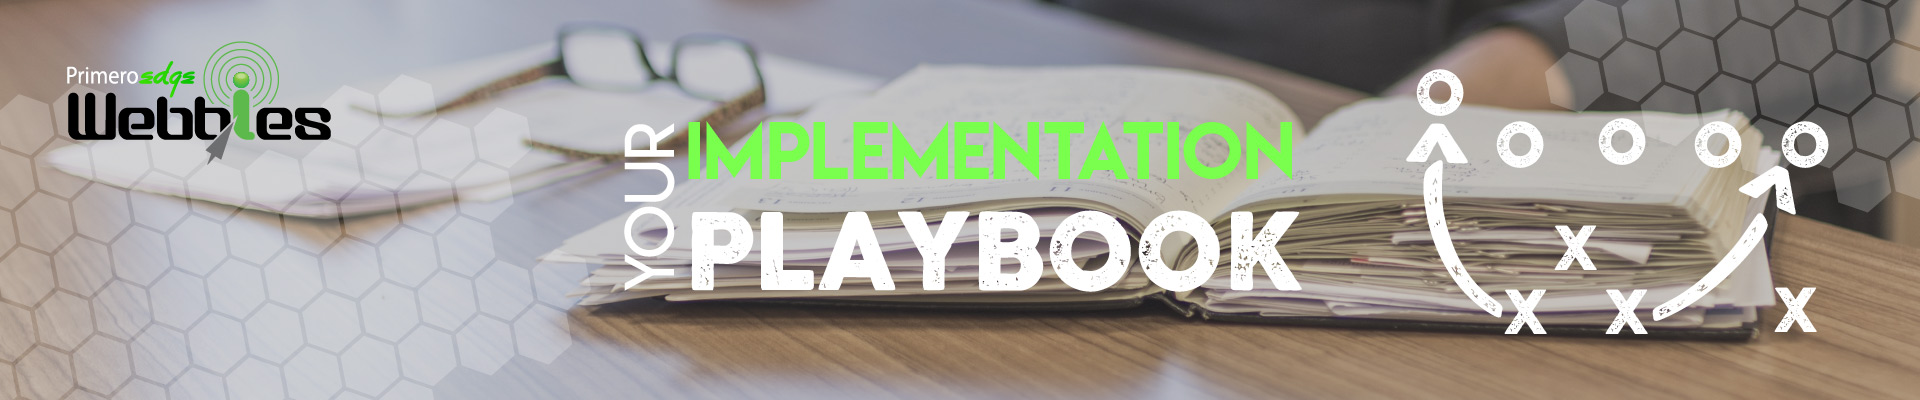 Webbies: Your Implementation Playbook